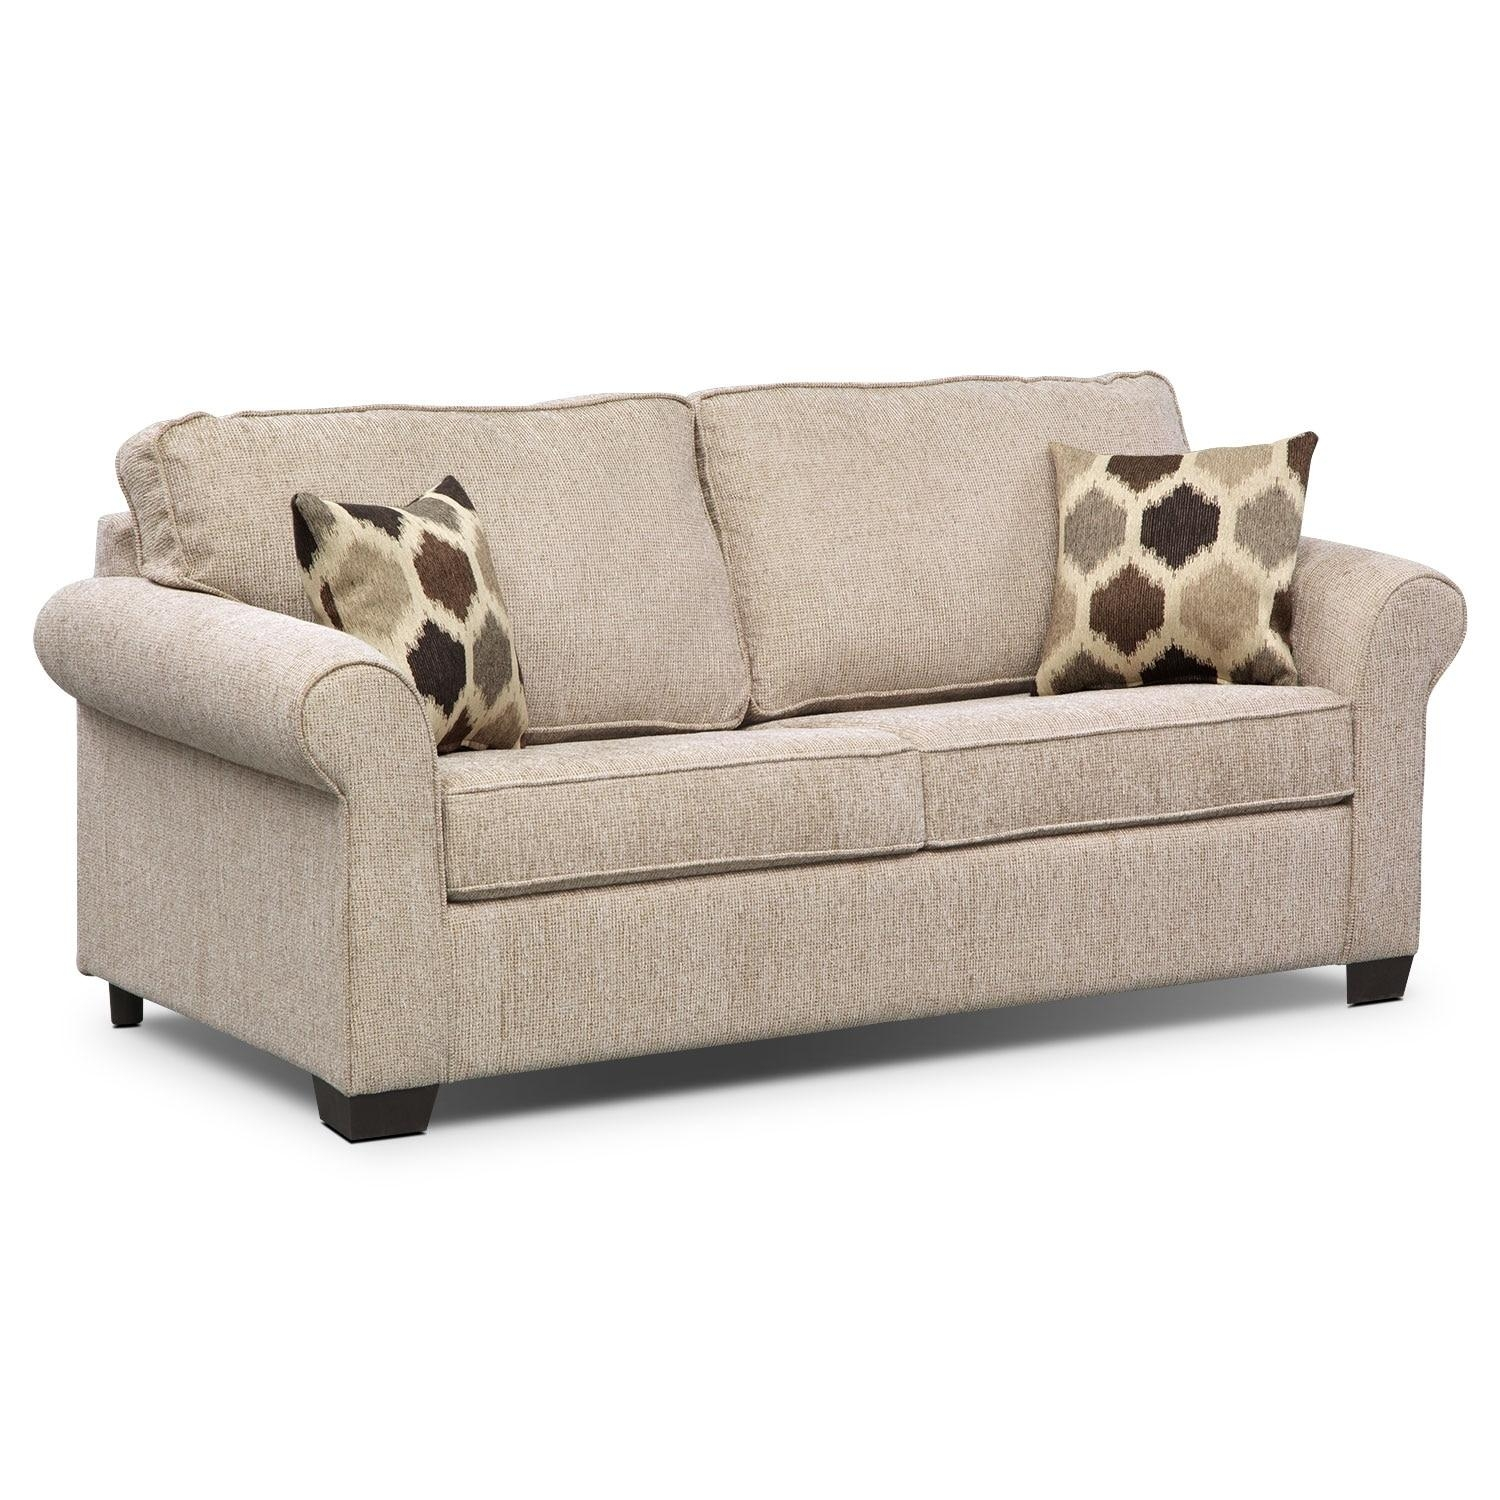 Foam Sleeper Sofa Bed | Centerfieldbar With Regard To American Sofa Beds (View 12 of 22)